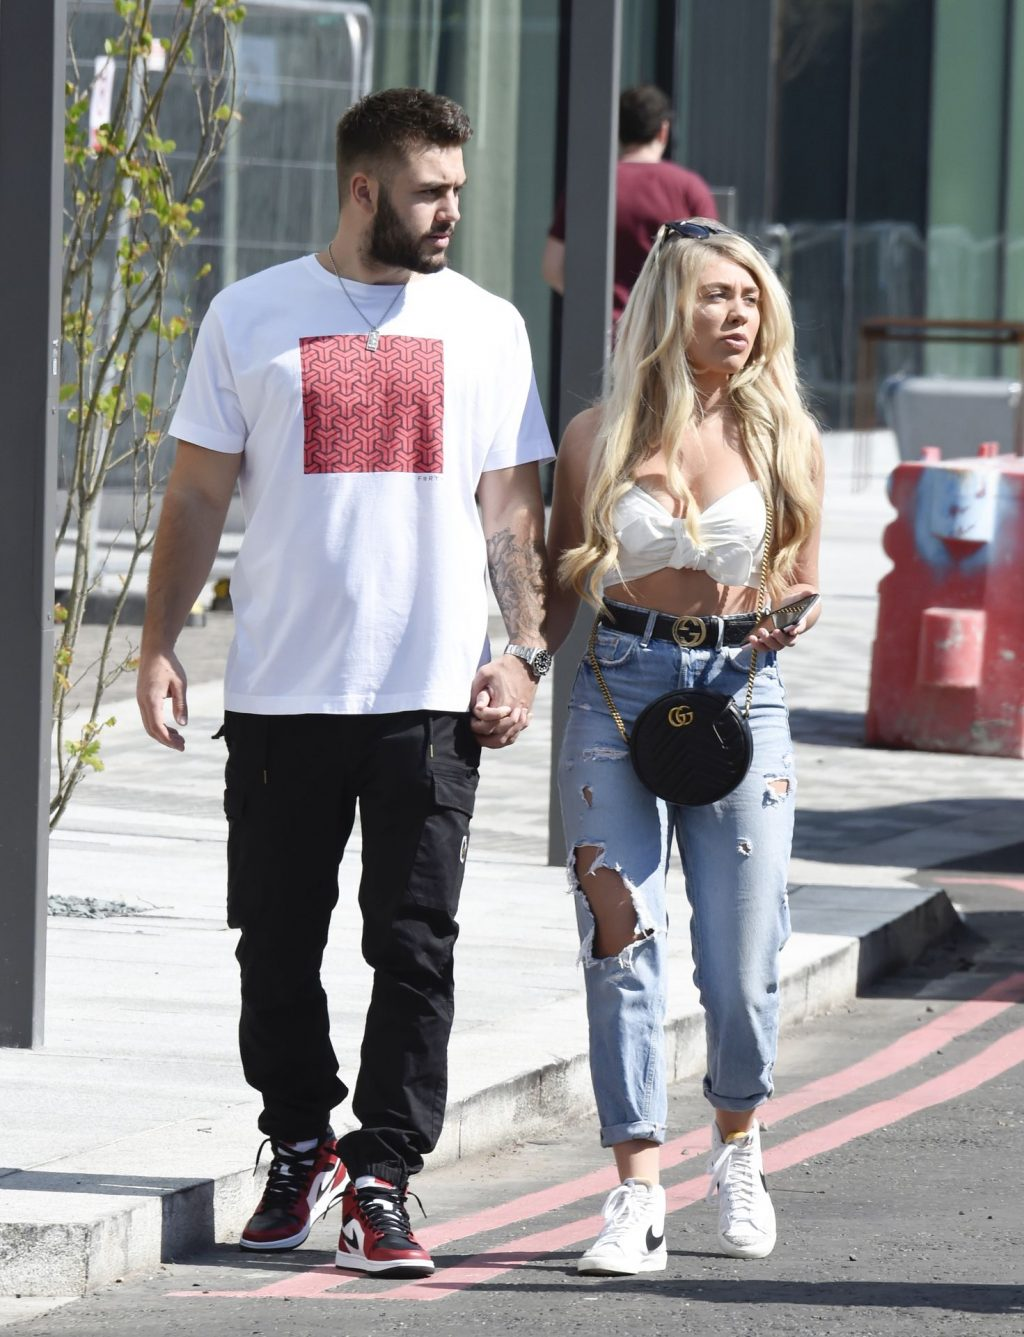 Paige Turley & Finn Tapp Out and About After Their Recent Move To Manchester (48 Photos)